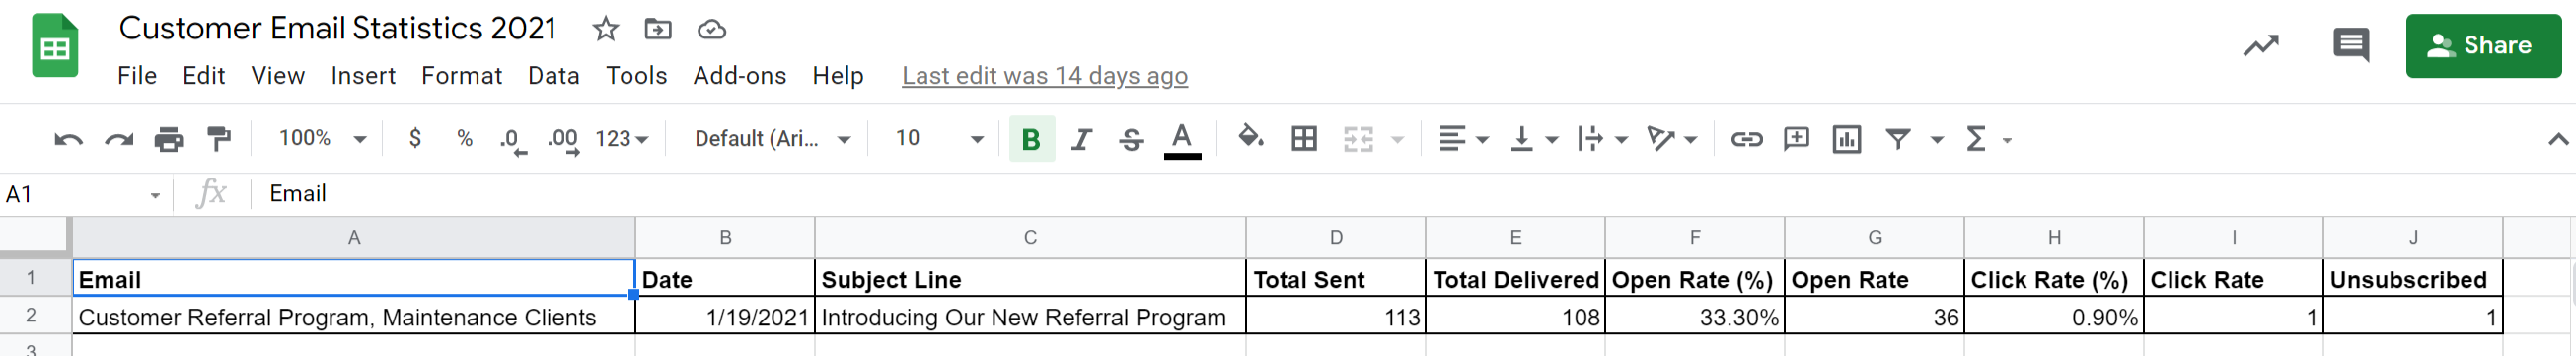 Customer Email Campaign Dashboard